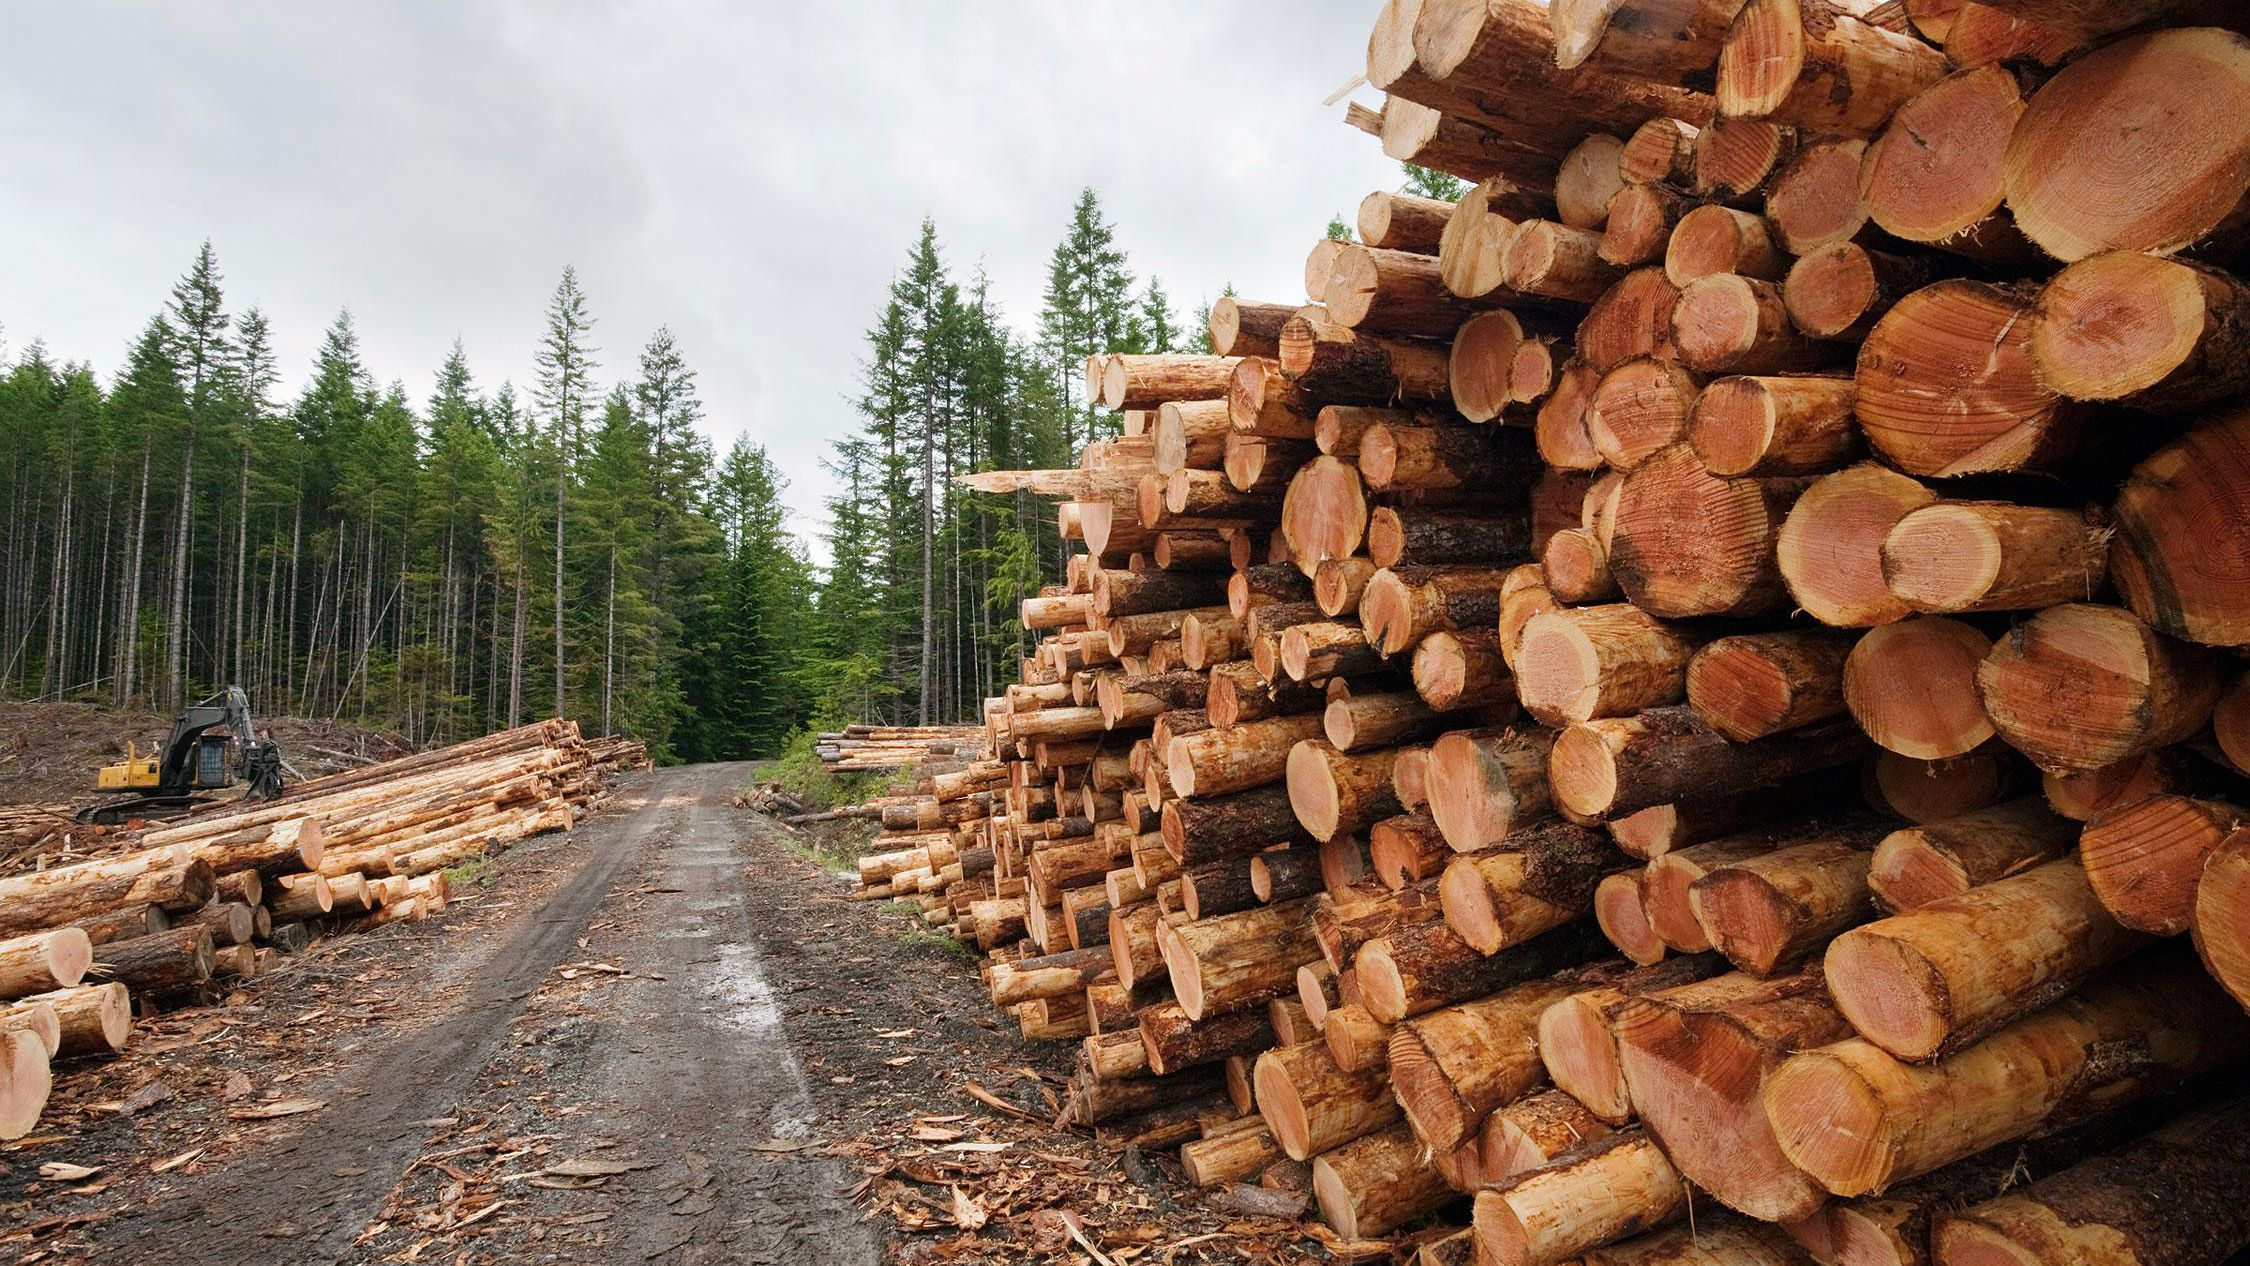 How to Find Logging and Timber Companies